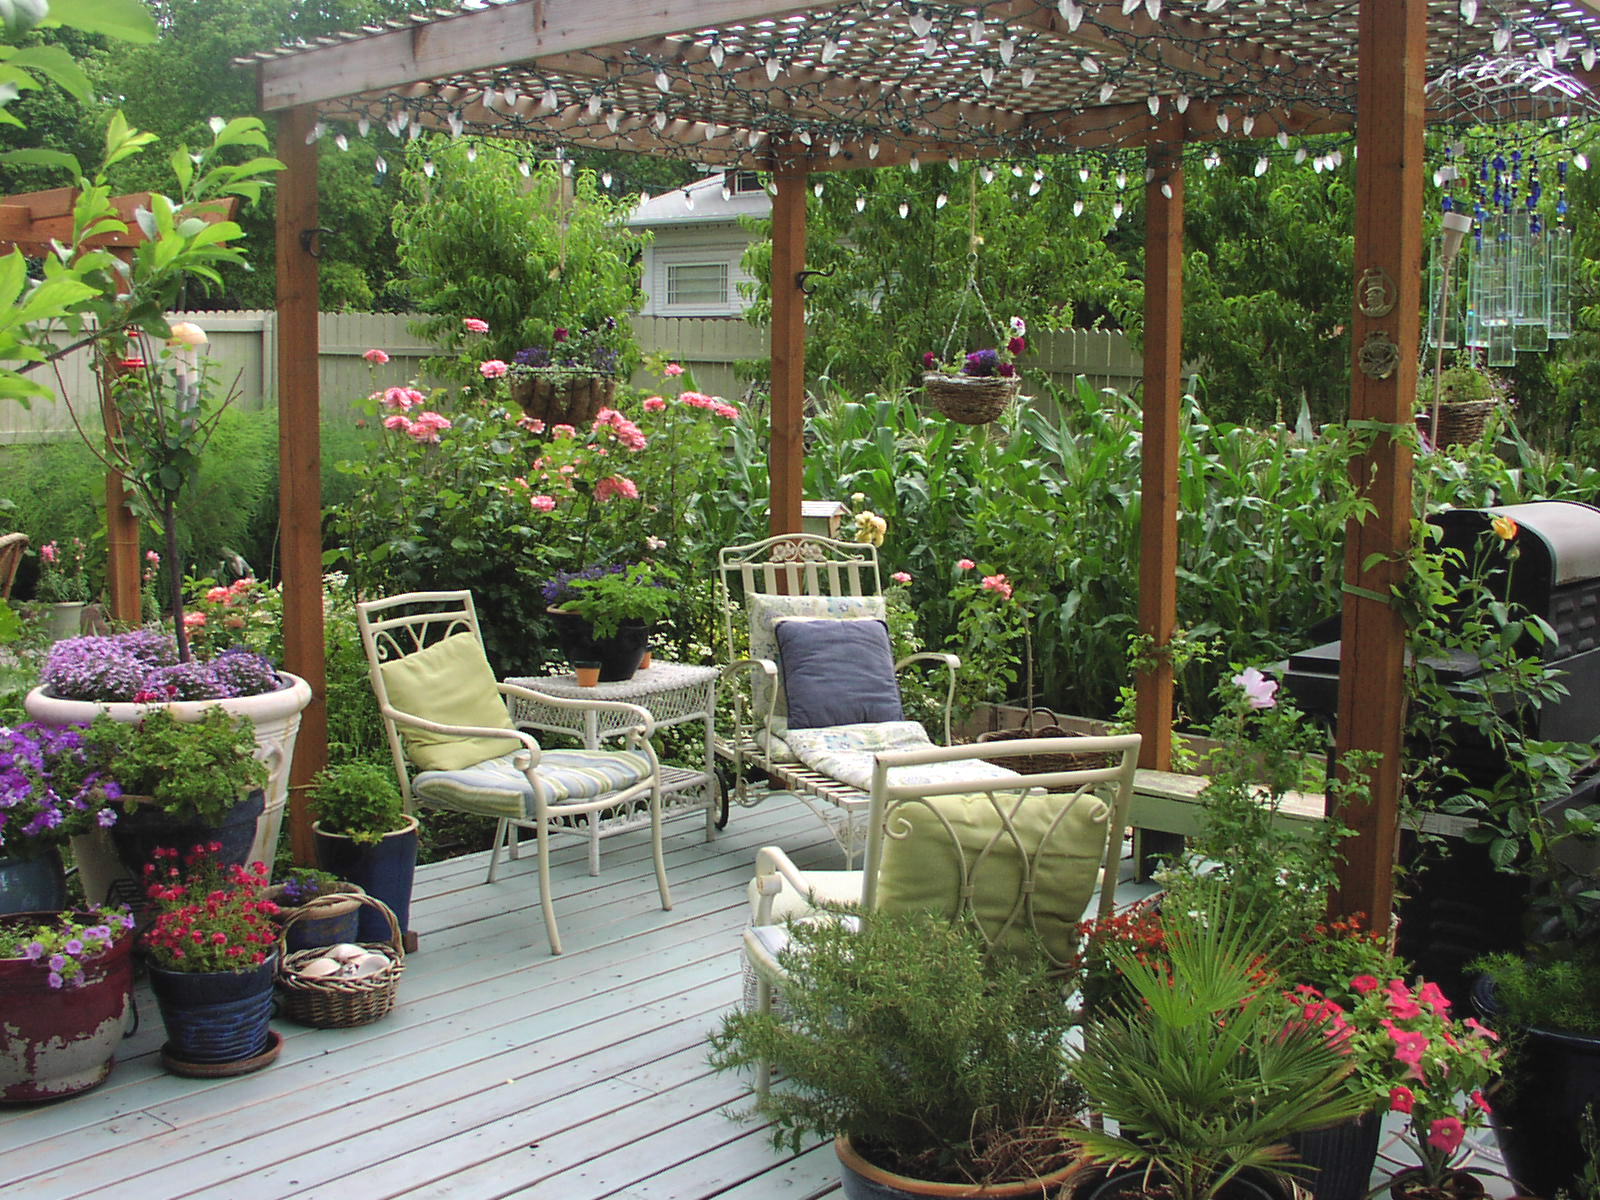 Deck Garden Ideas this would be great with a jacuzzi inside covered deck with windowbox container garden is Deck Gardens Photos